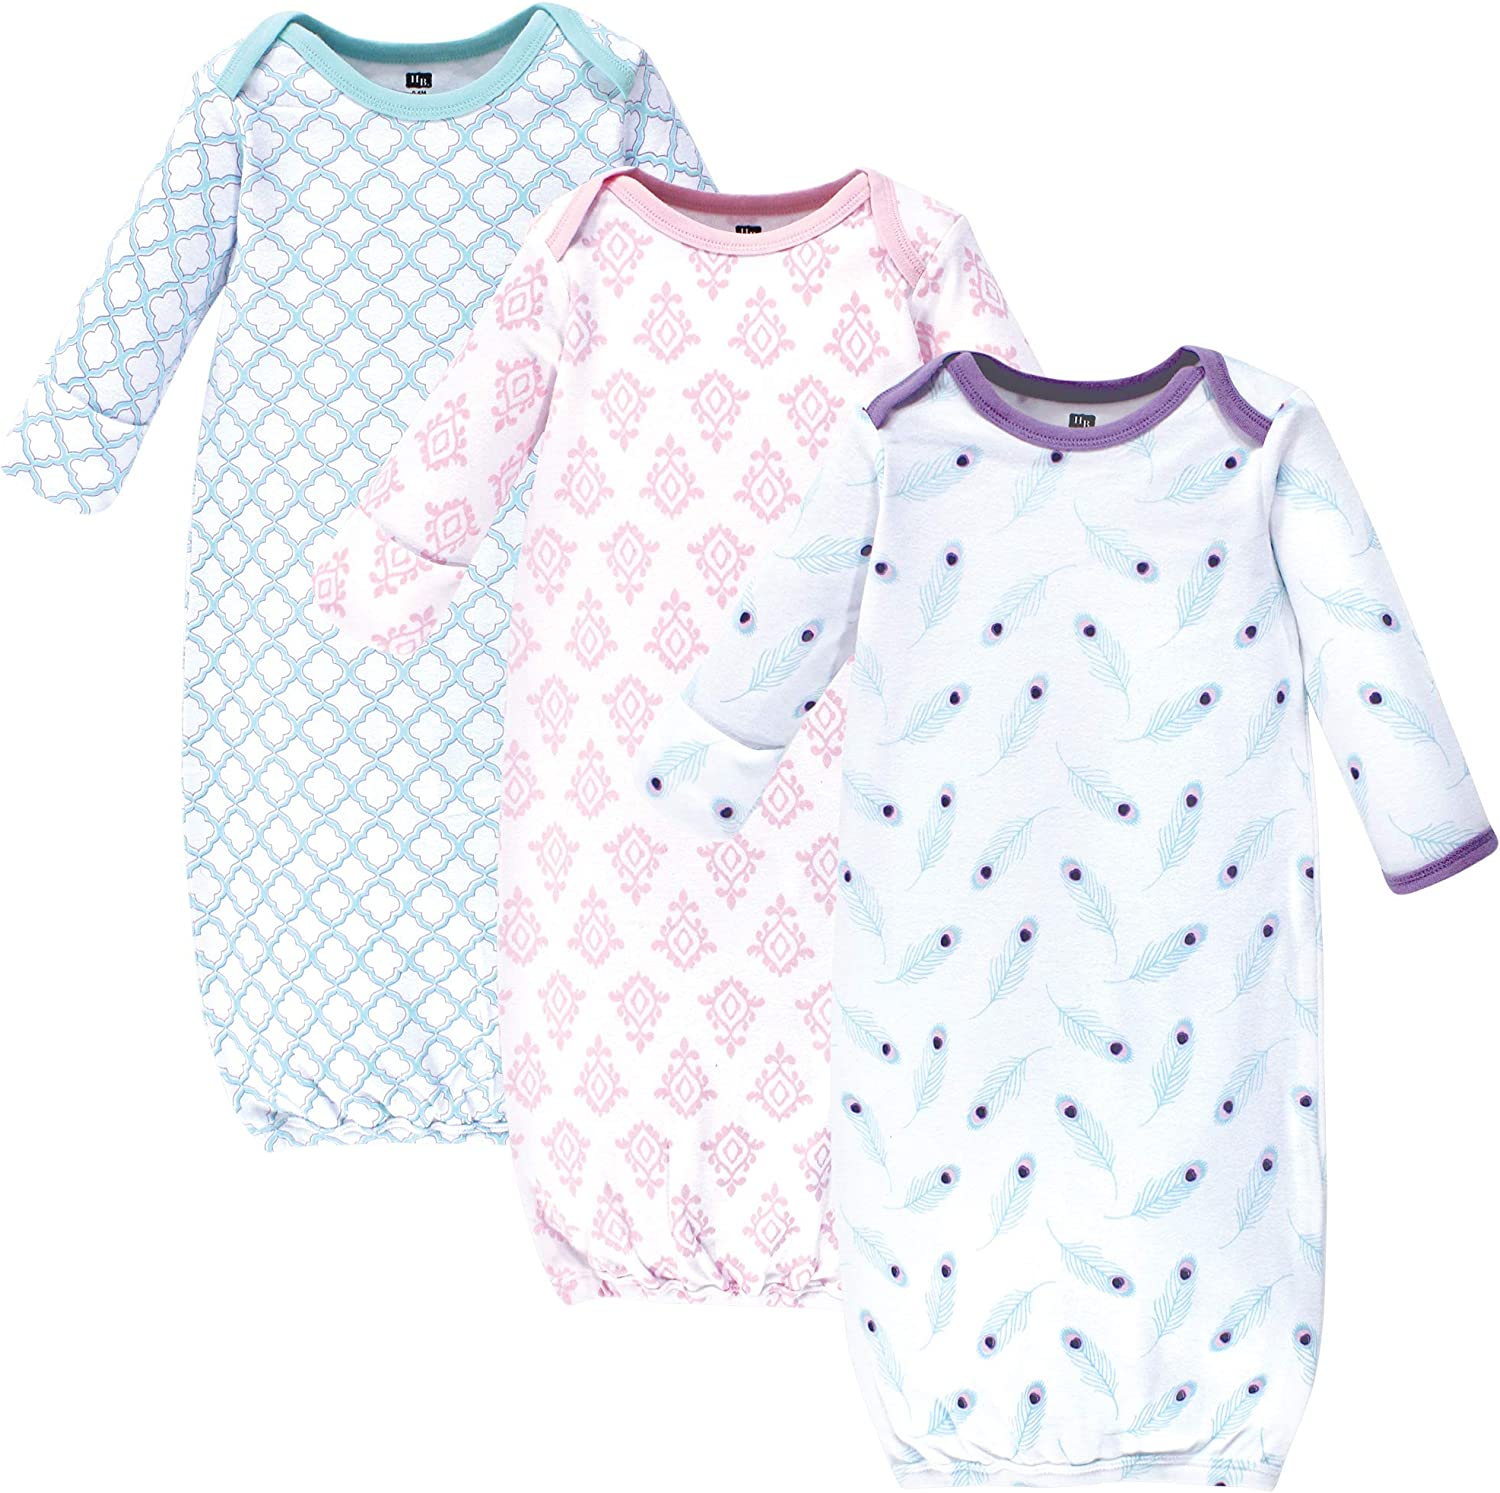 Hudson baby Baby Boys Cotton Gowns Nightgown